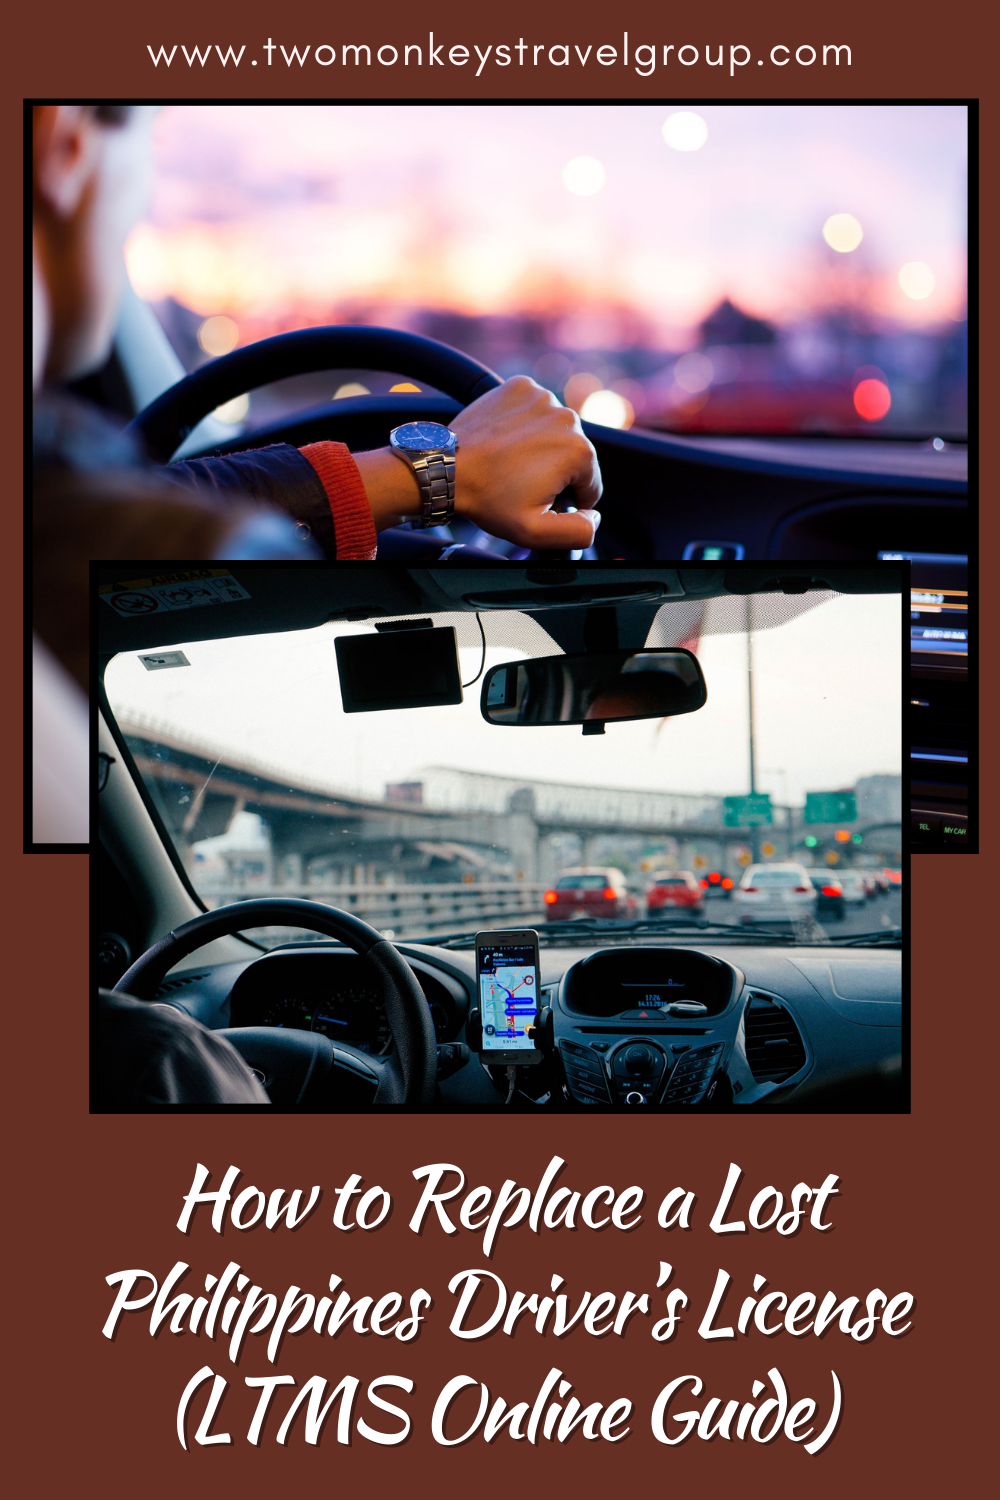 How to Replace a Lost Philippines Driver's License (LTMS Online Guide)